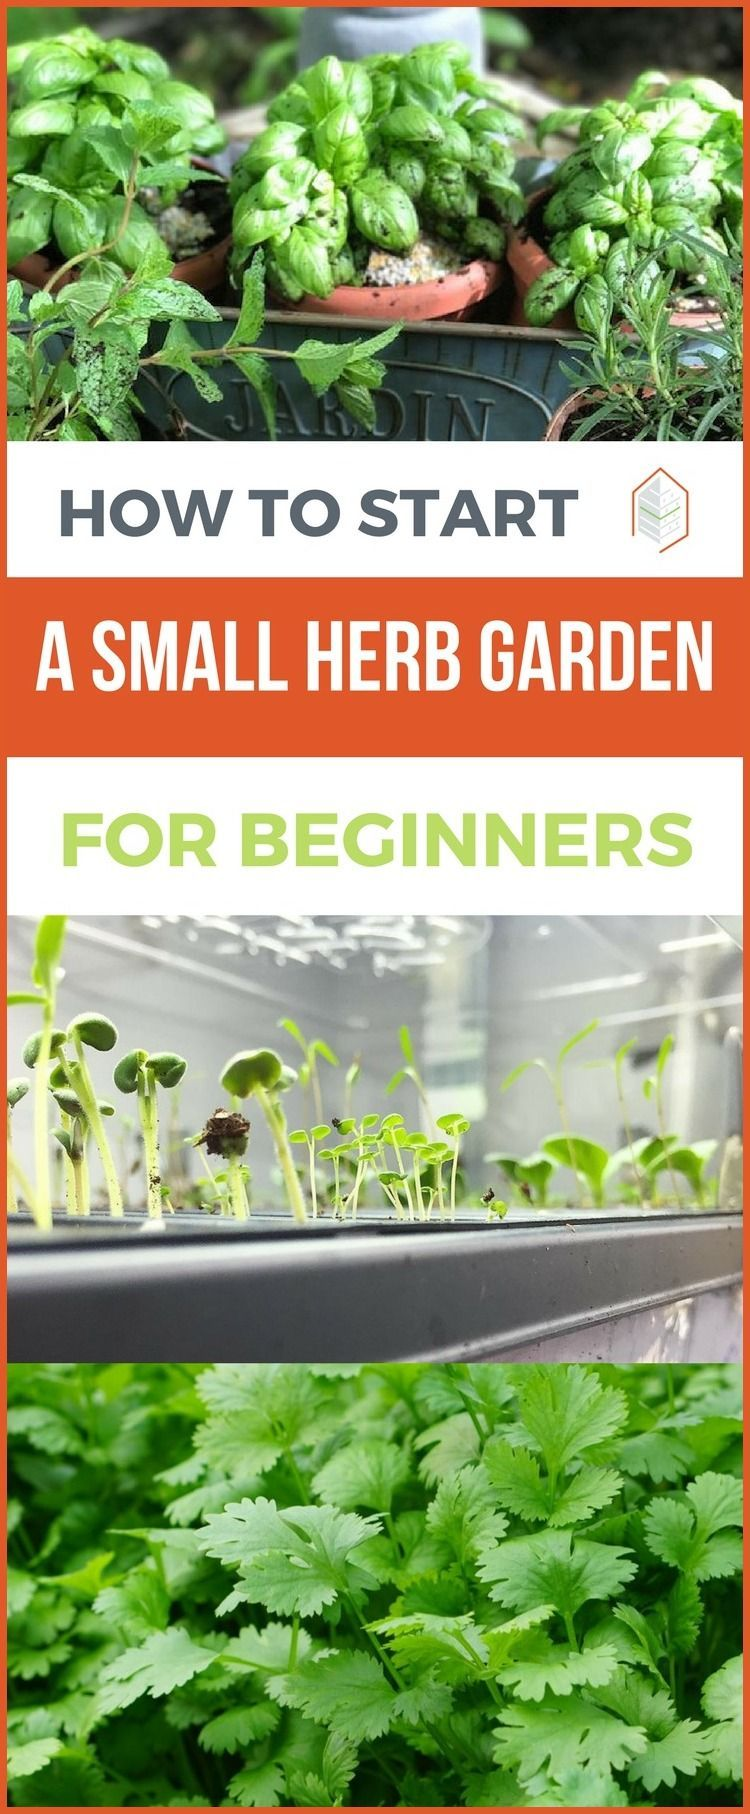 How to Start a Small Herb Garden and Be Successful is part of Small herb gardens, Indoor vegetable gardening, Gardening for beginners, Vegetable garden for beginners, Indoor herb garden, Vertical herb garden - Our 4 steps guide How to start a small herb garden If you want to know how to start a small herb garden, then